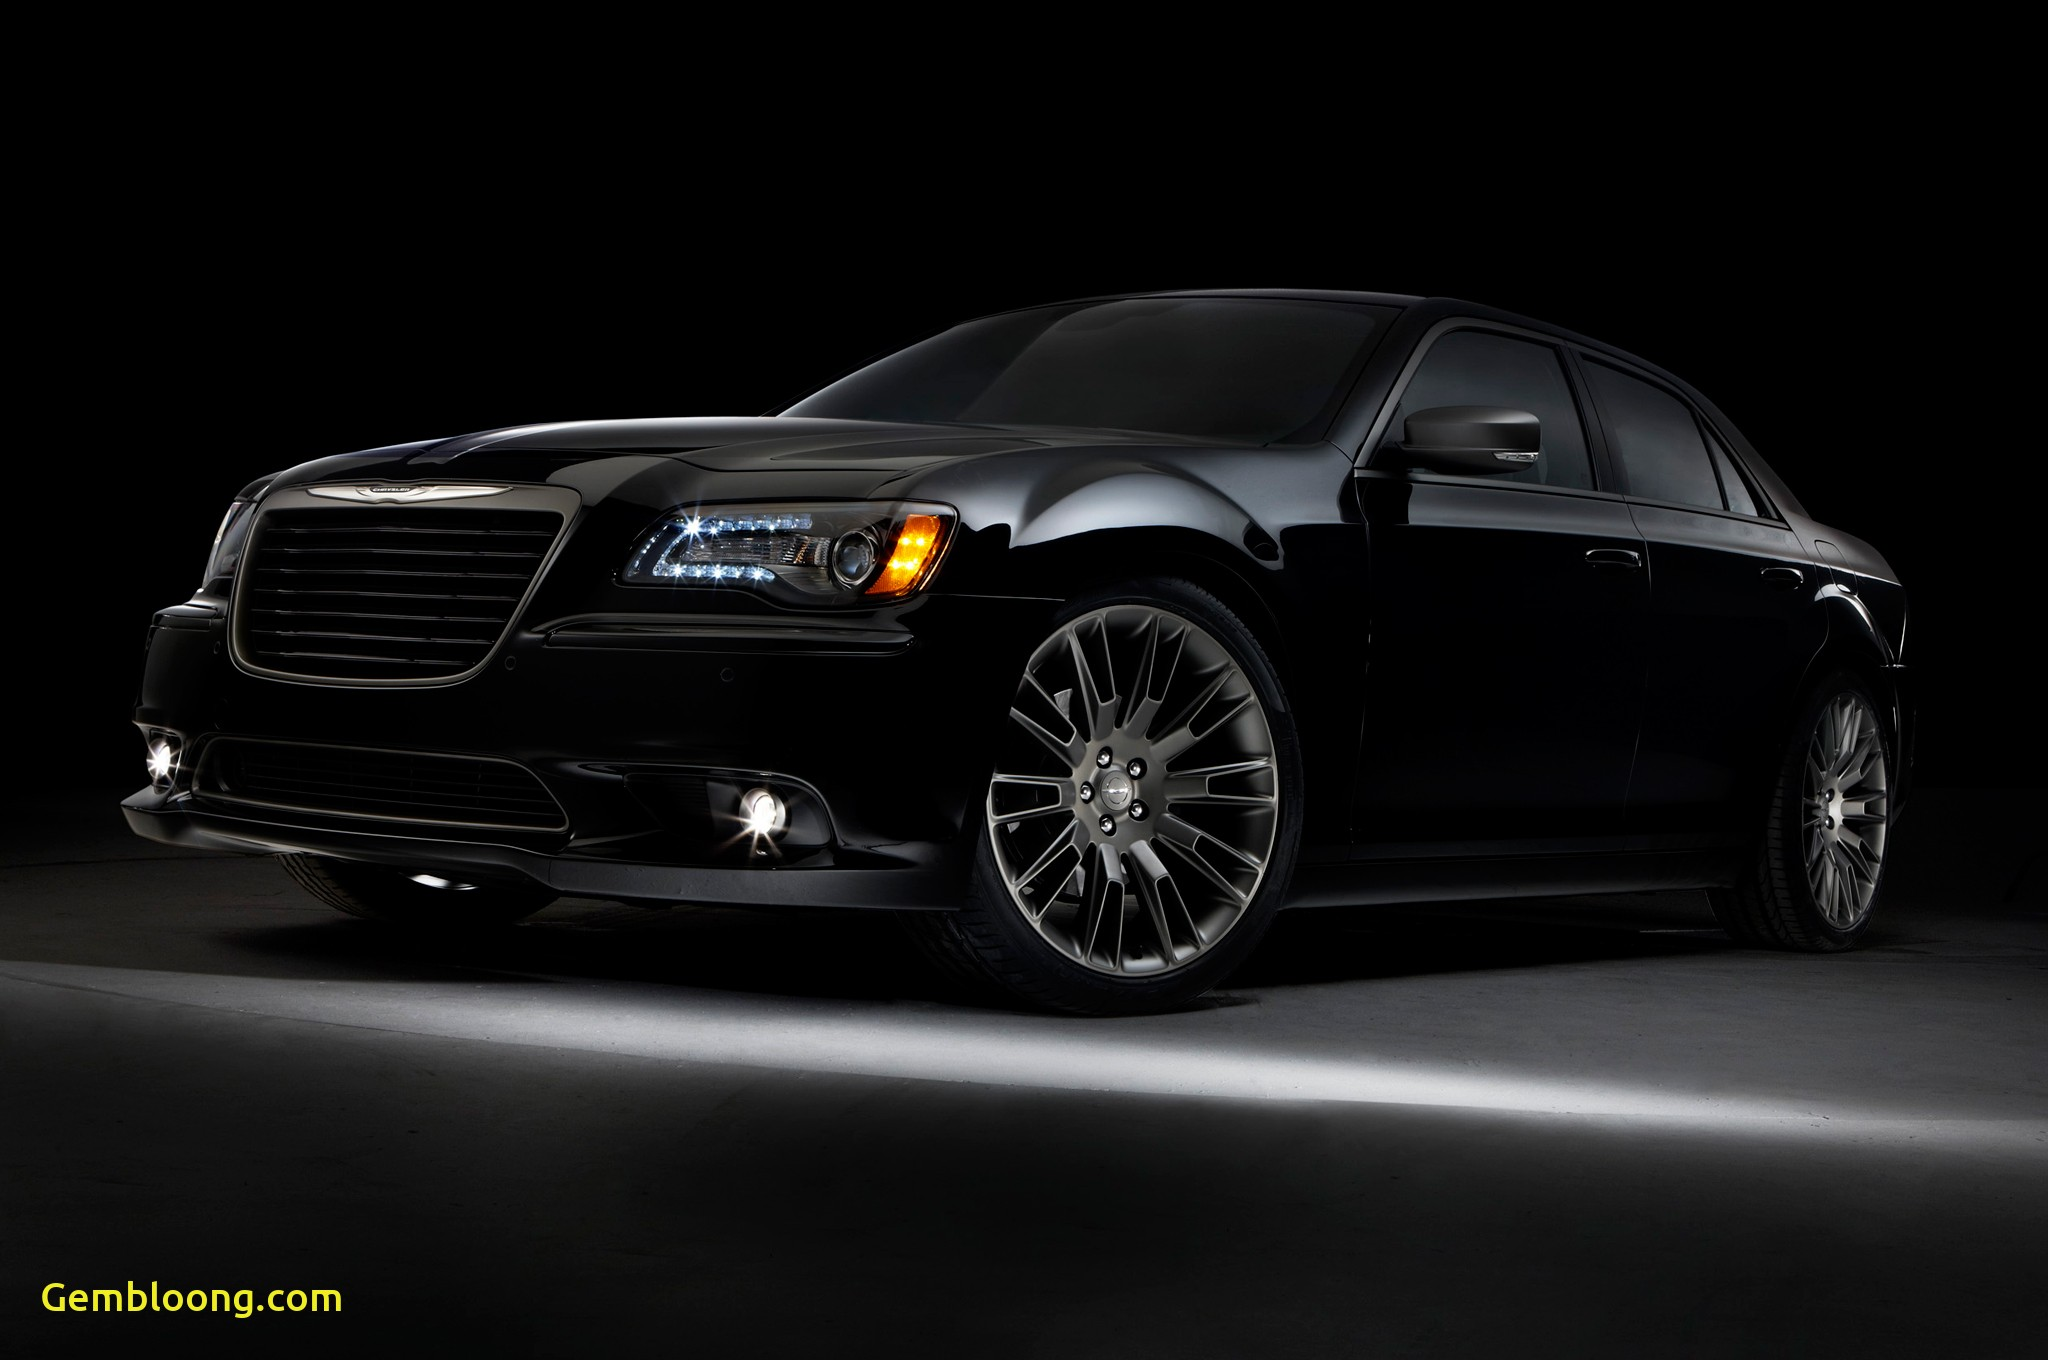 2015 Chrysler 300 Beautiful Bmw Cars Wallpaper Hd for Desktop Best Cars Wallpapers